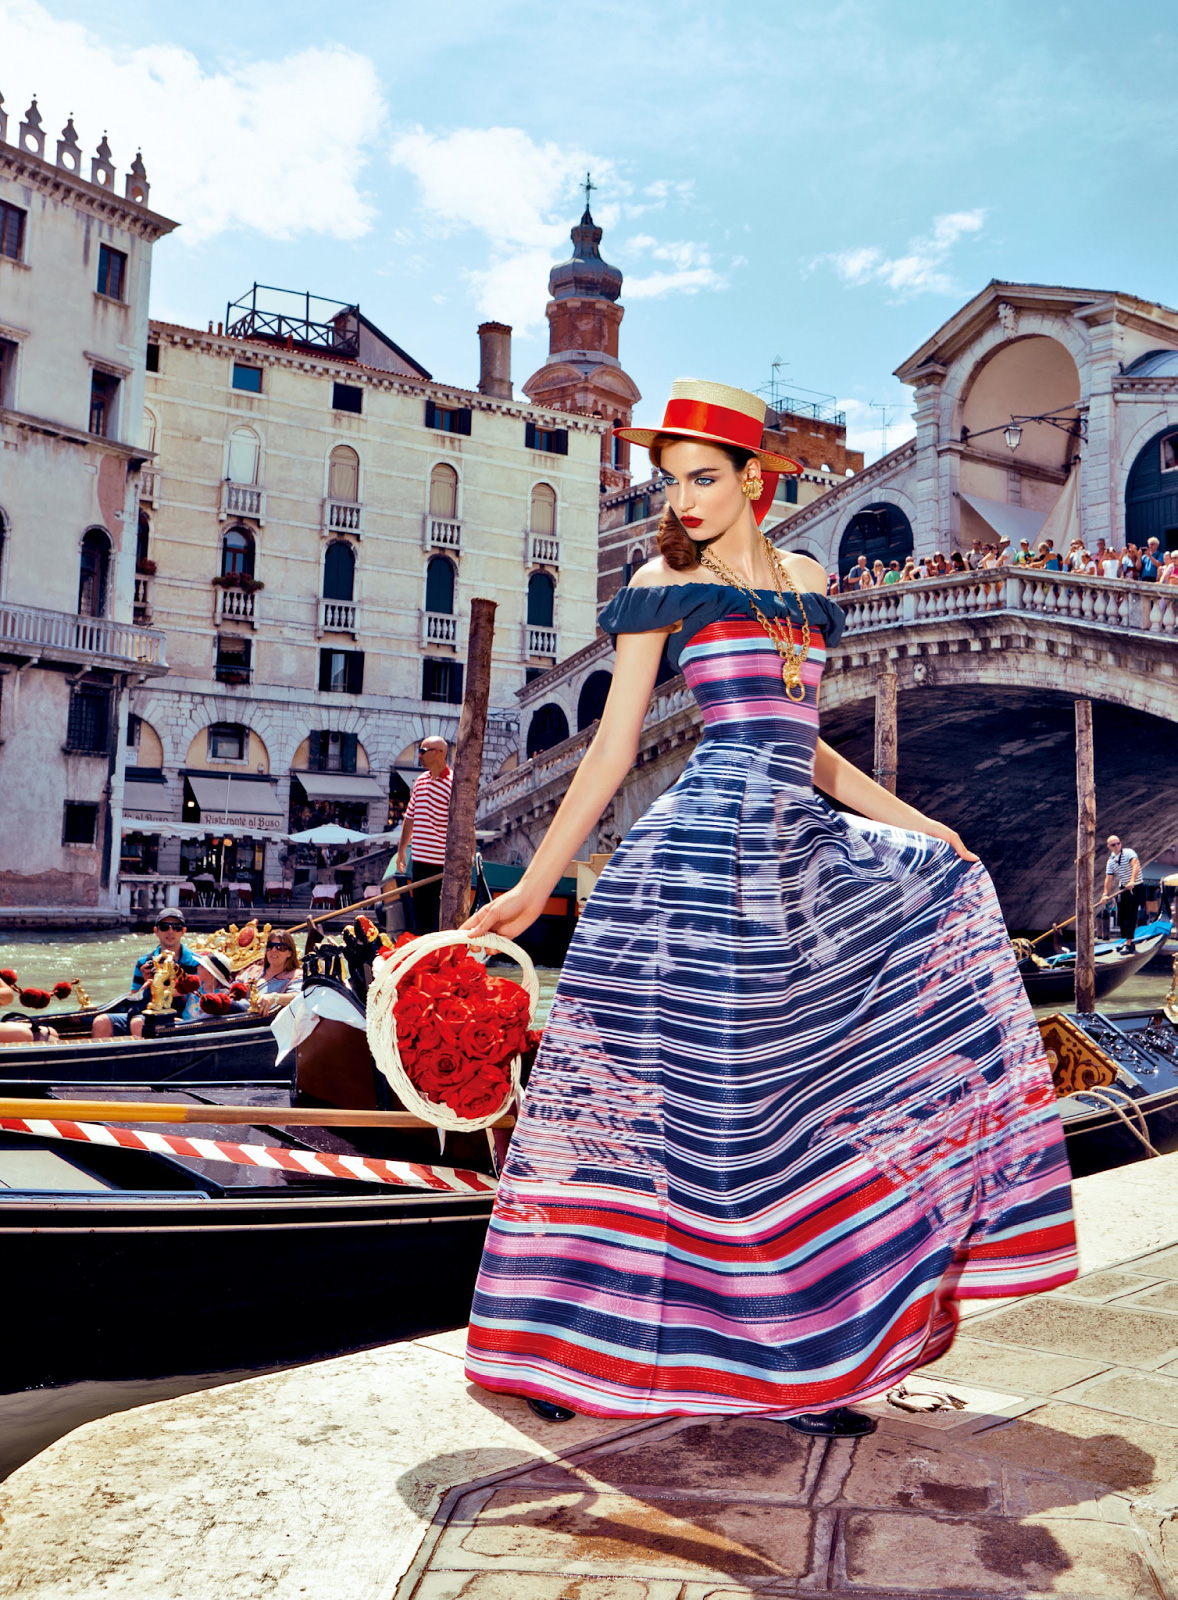 Zuzanna-Bijoch-by-Pierpaolo-Ferrari-for-Vogue-Japan-February-2014-(My-Fascination-with-Venice)-(9)